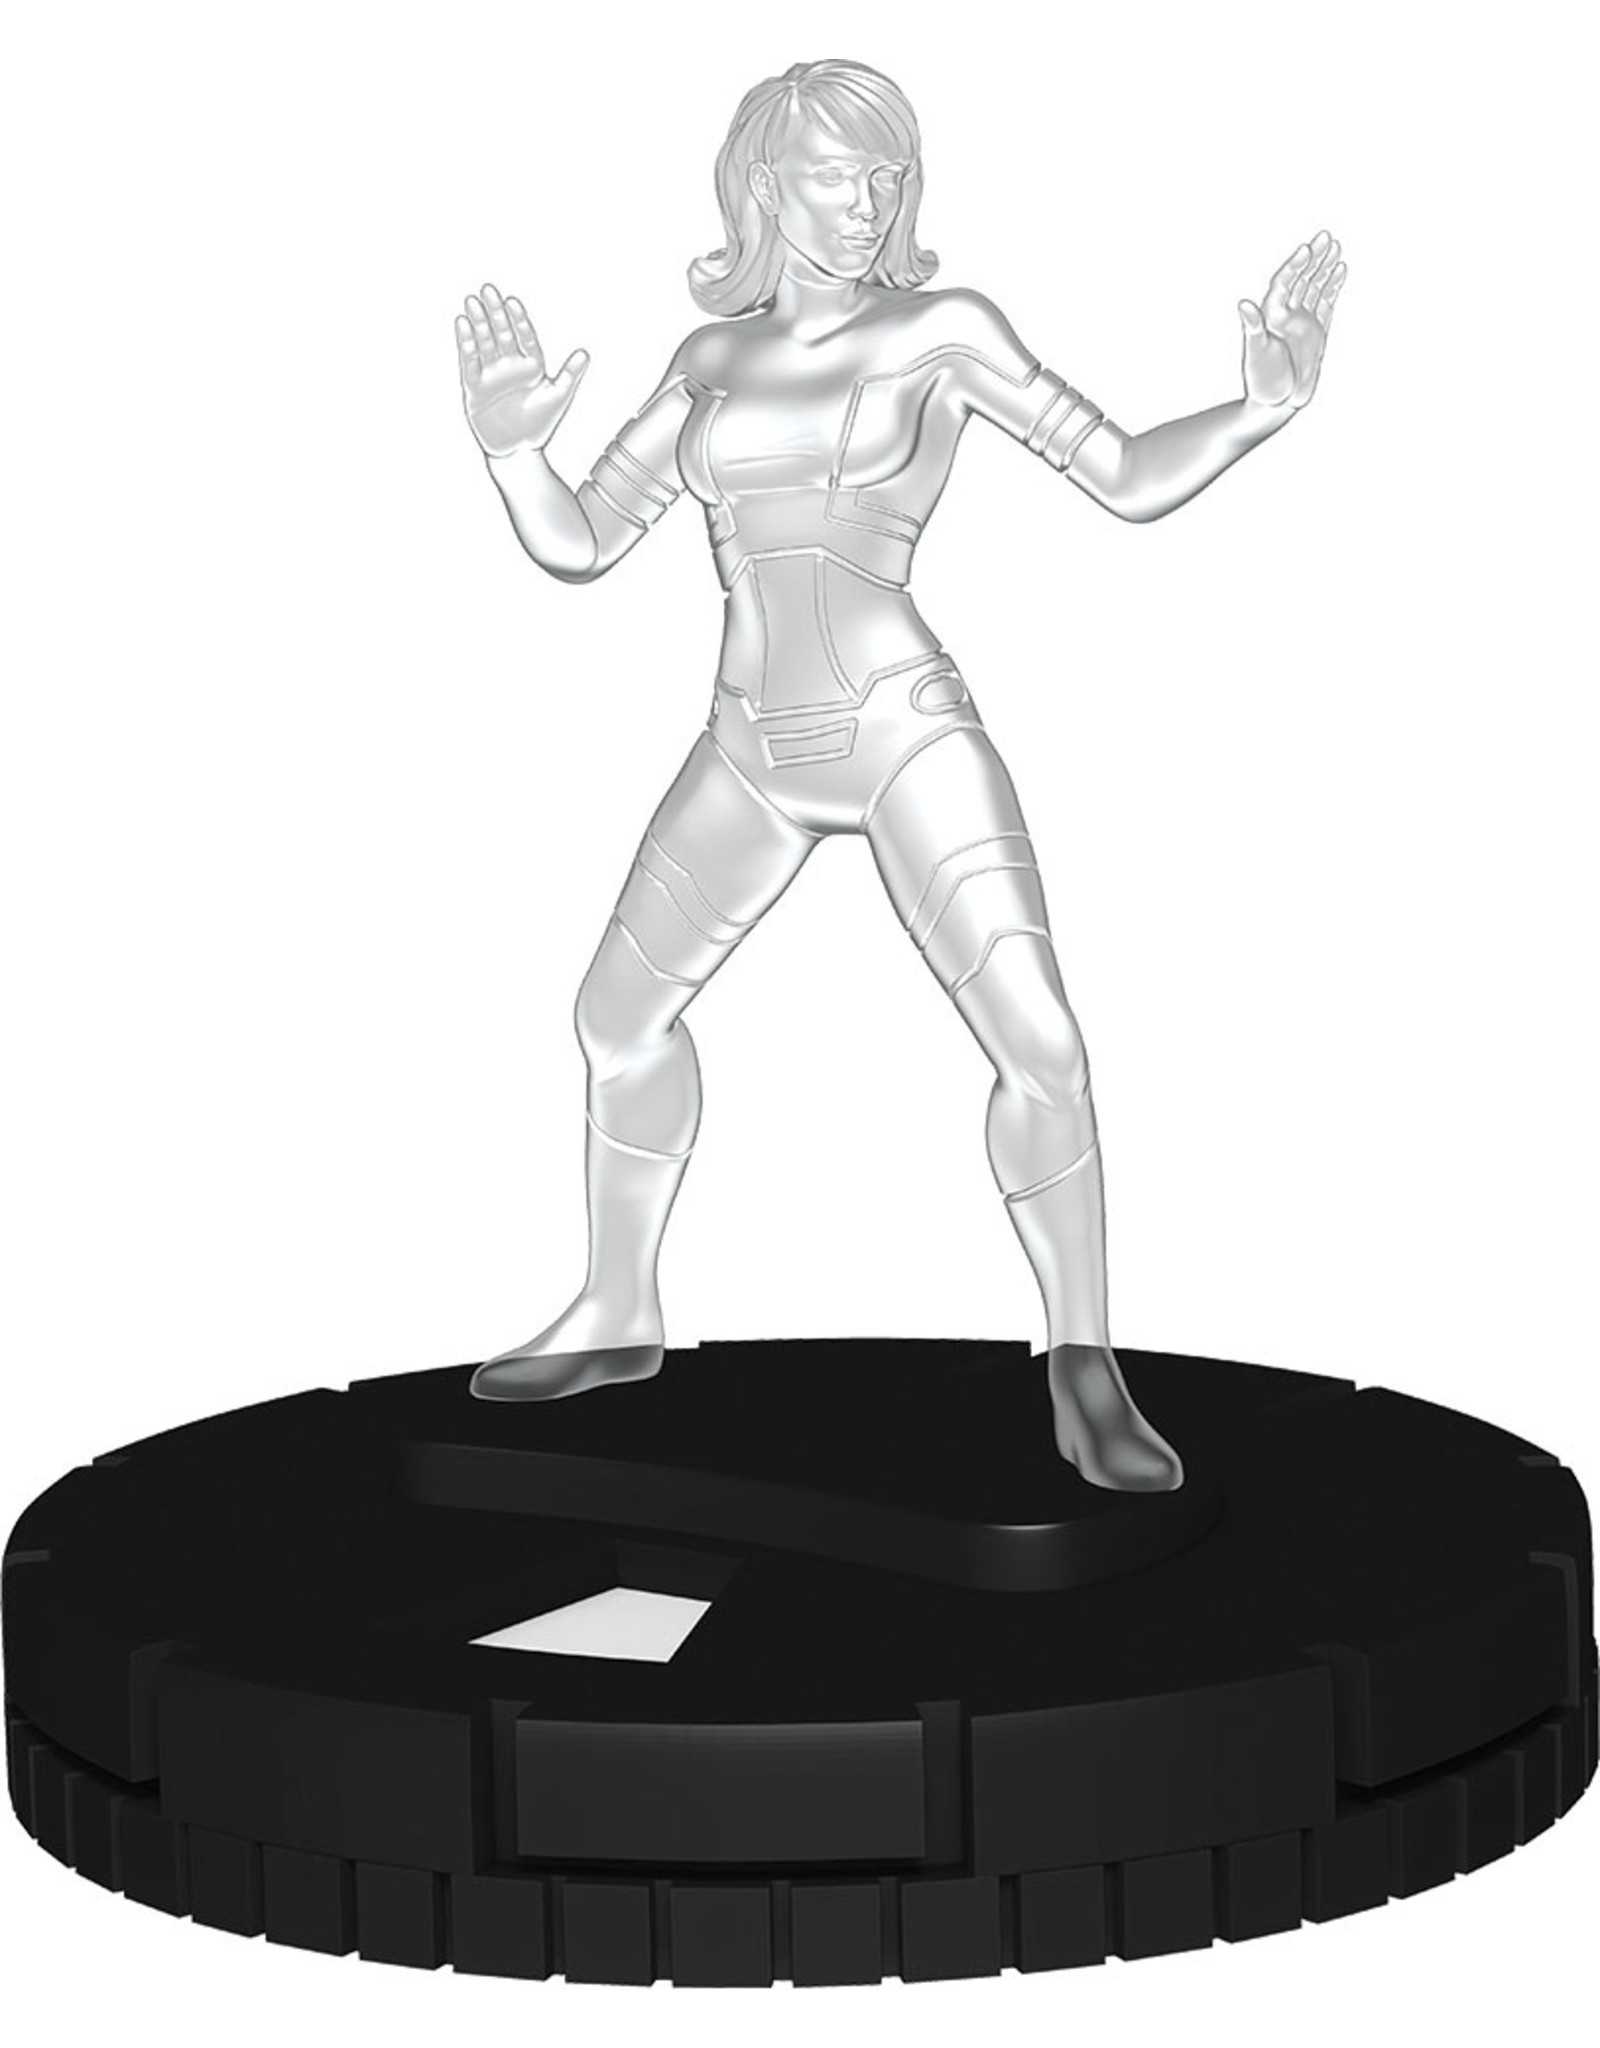 WizKids Marvel HeroClix: Fantastic Four Future Foundation Play at Home Kit